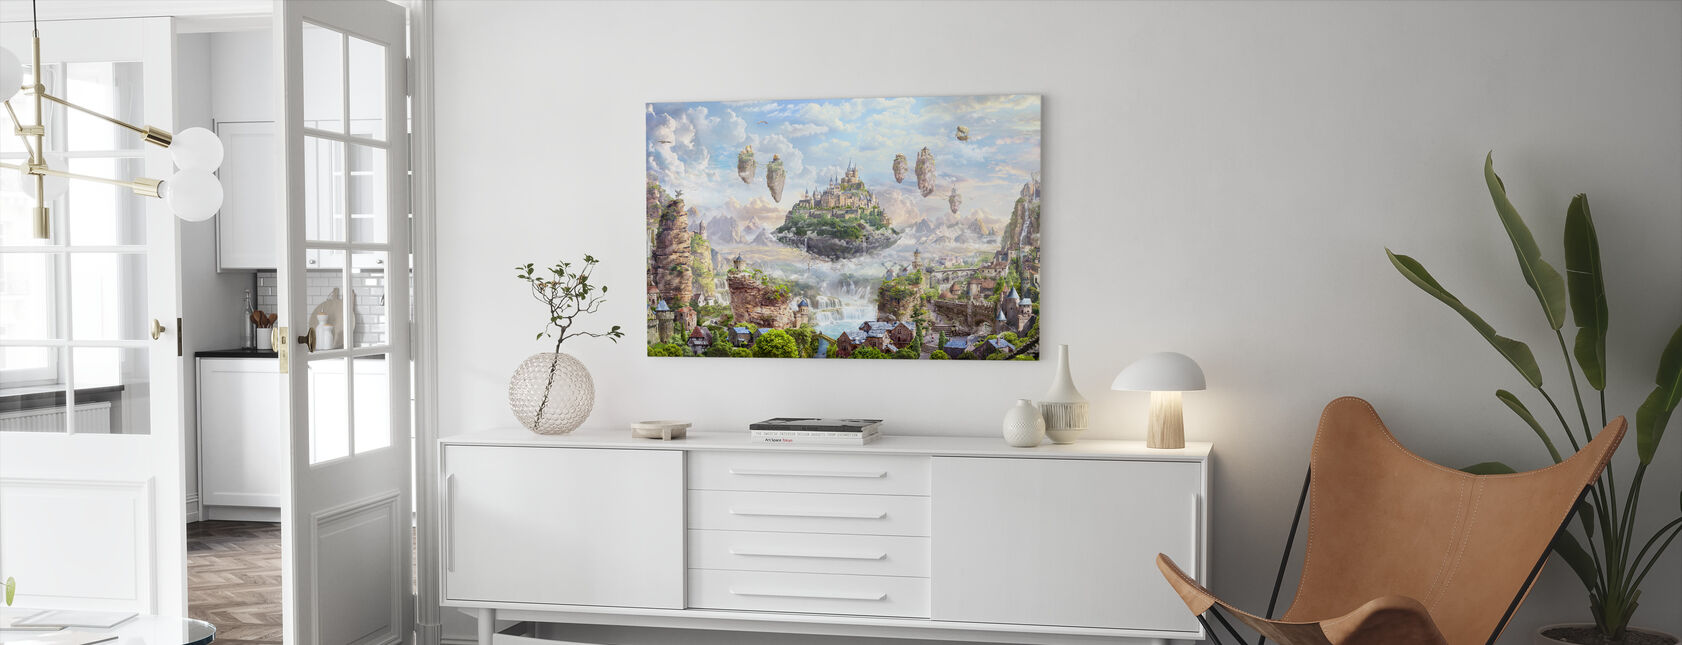 Sky Castle - Canvas print - Living Room